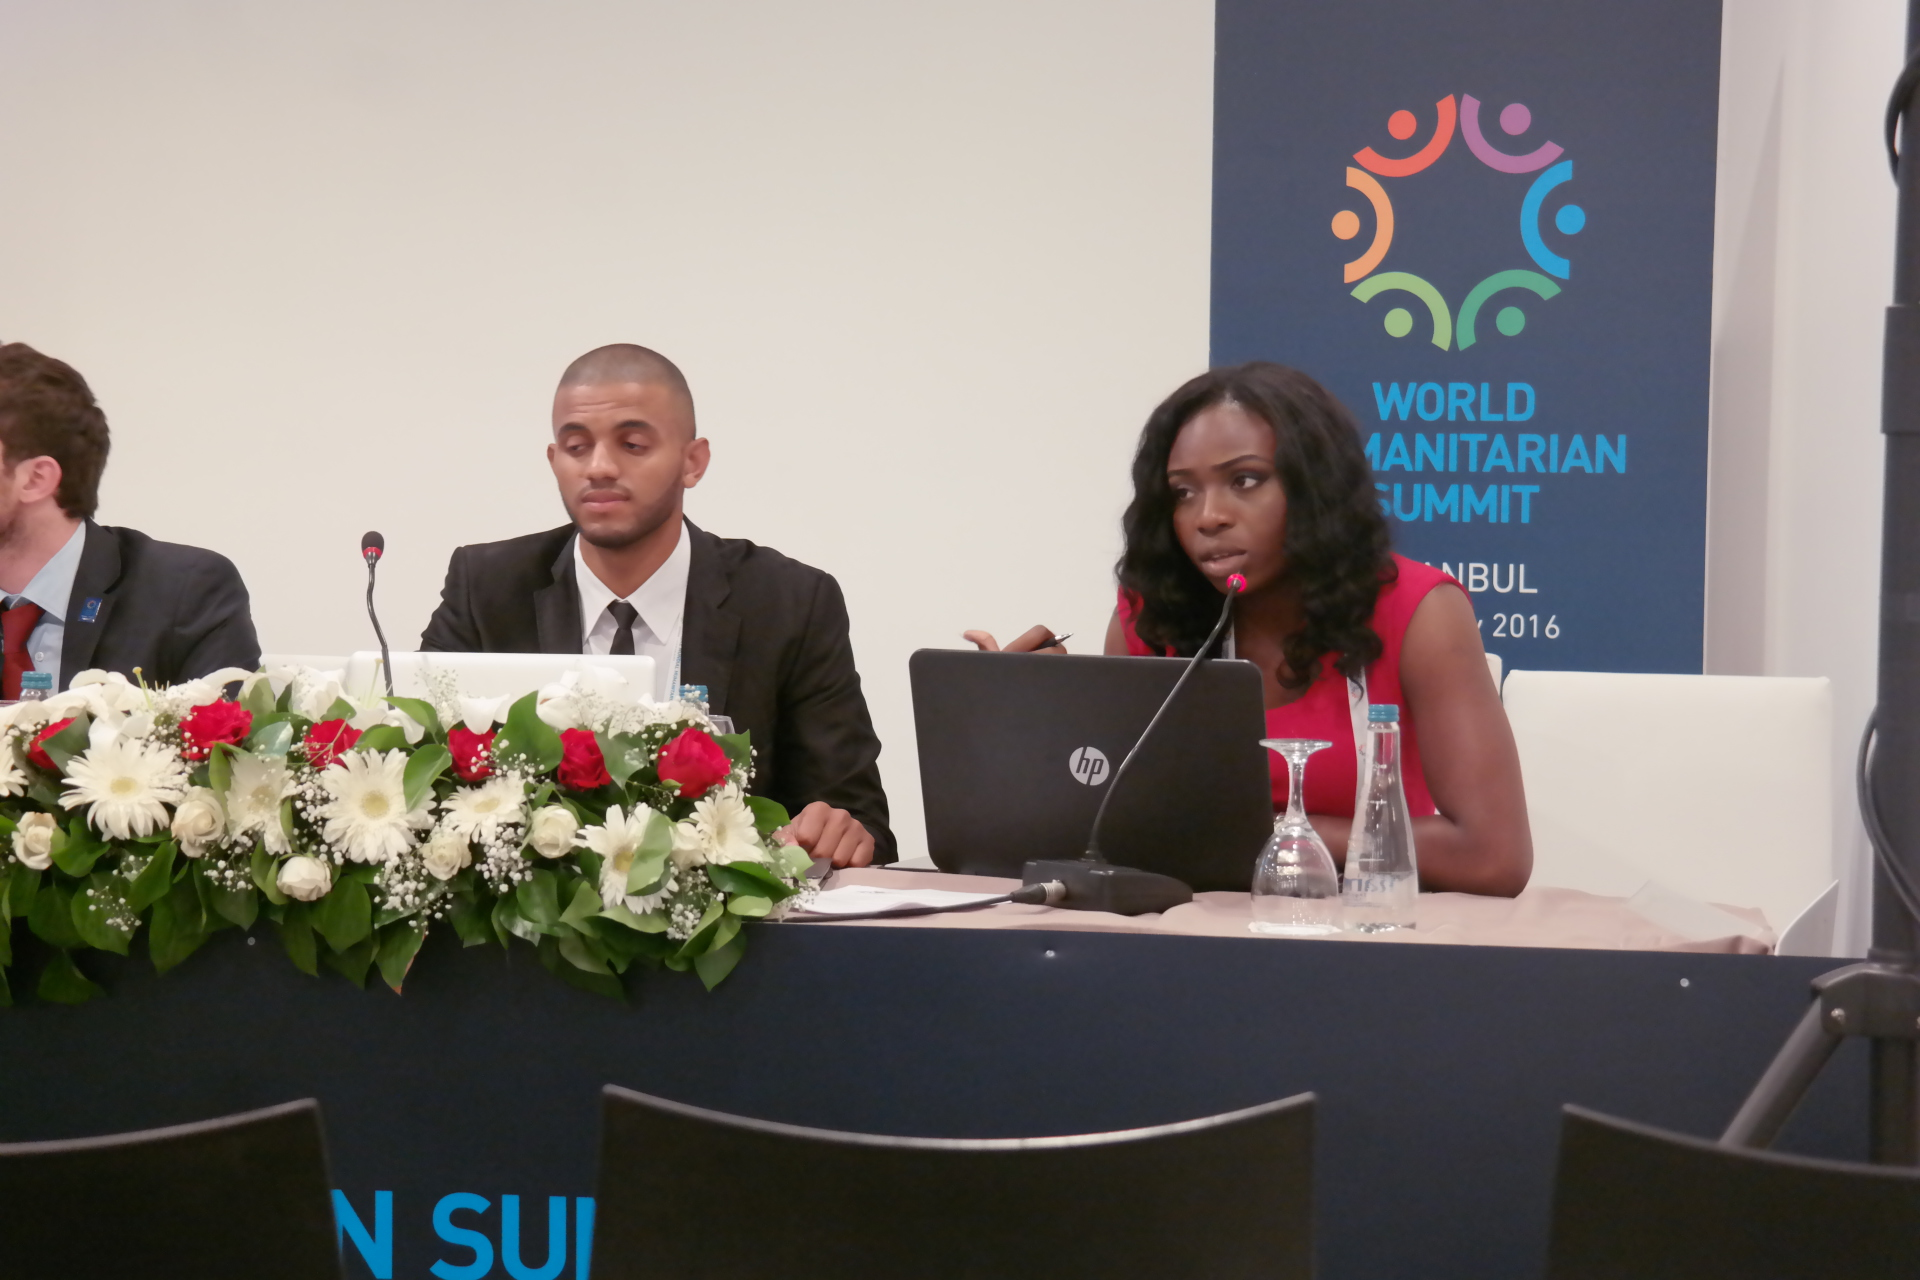 OVERVIEW FROM THE WORLD HUMANITARIAN SUMMIT ISTANBUL